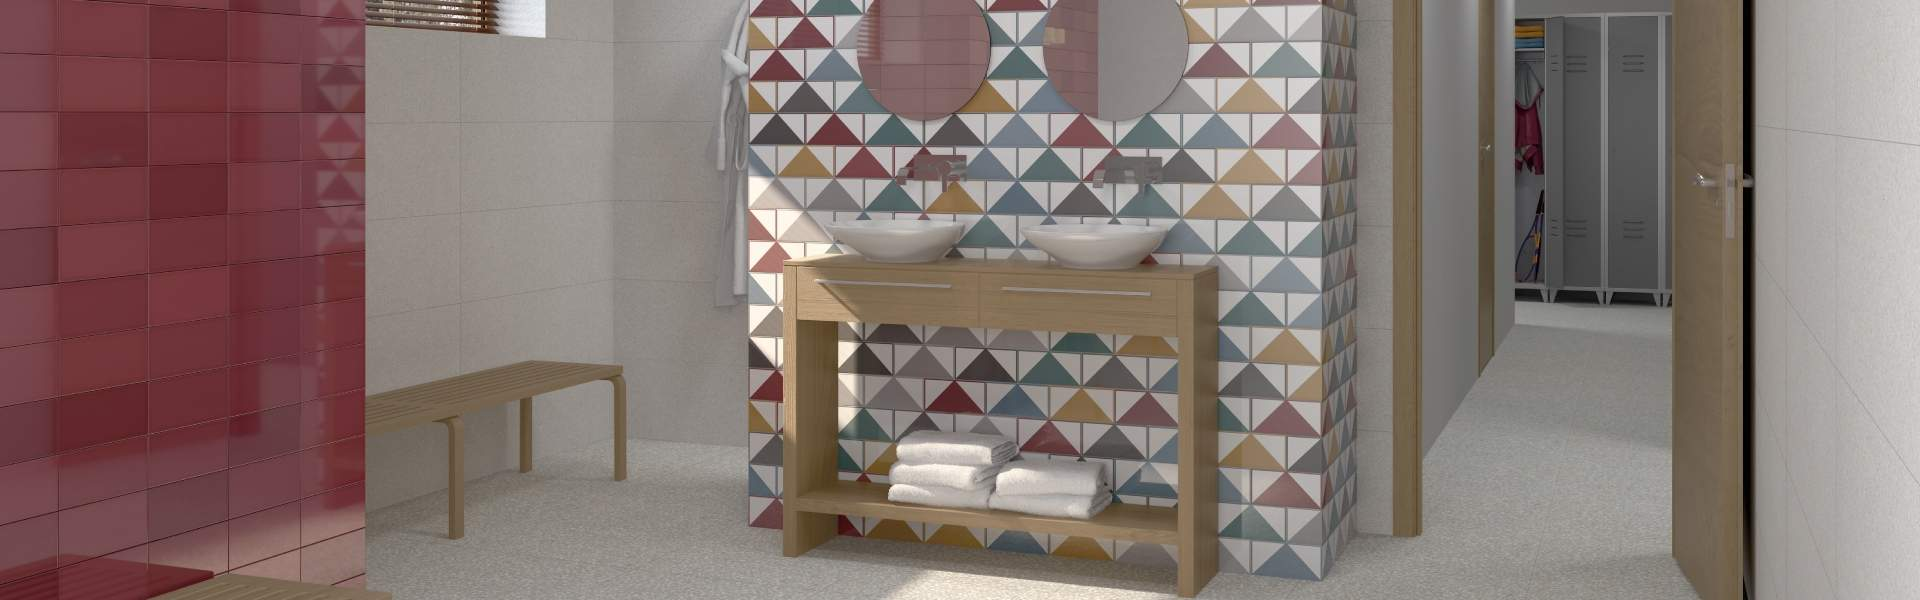 Colourfulmetro tiles at italian tile and stone dublin hover to zoom dailygadgetfo Images